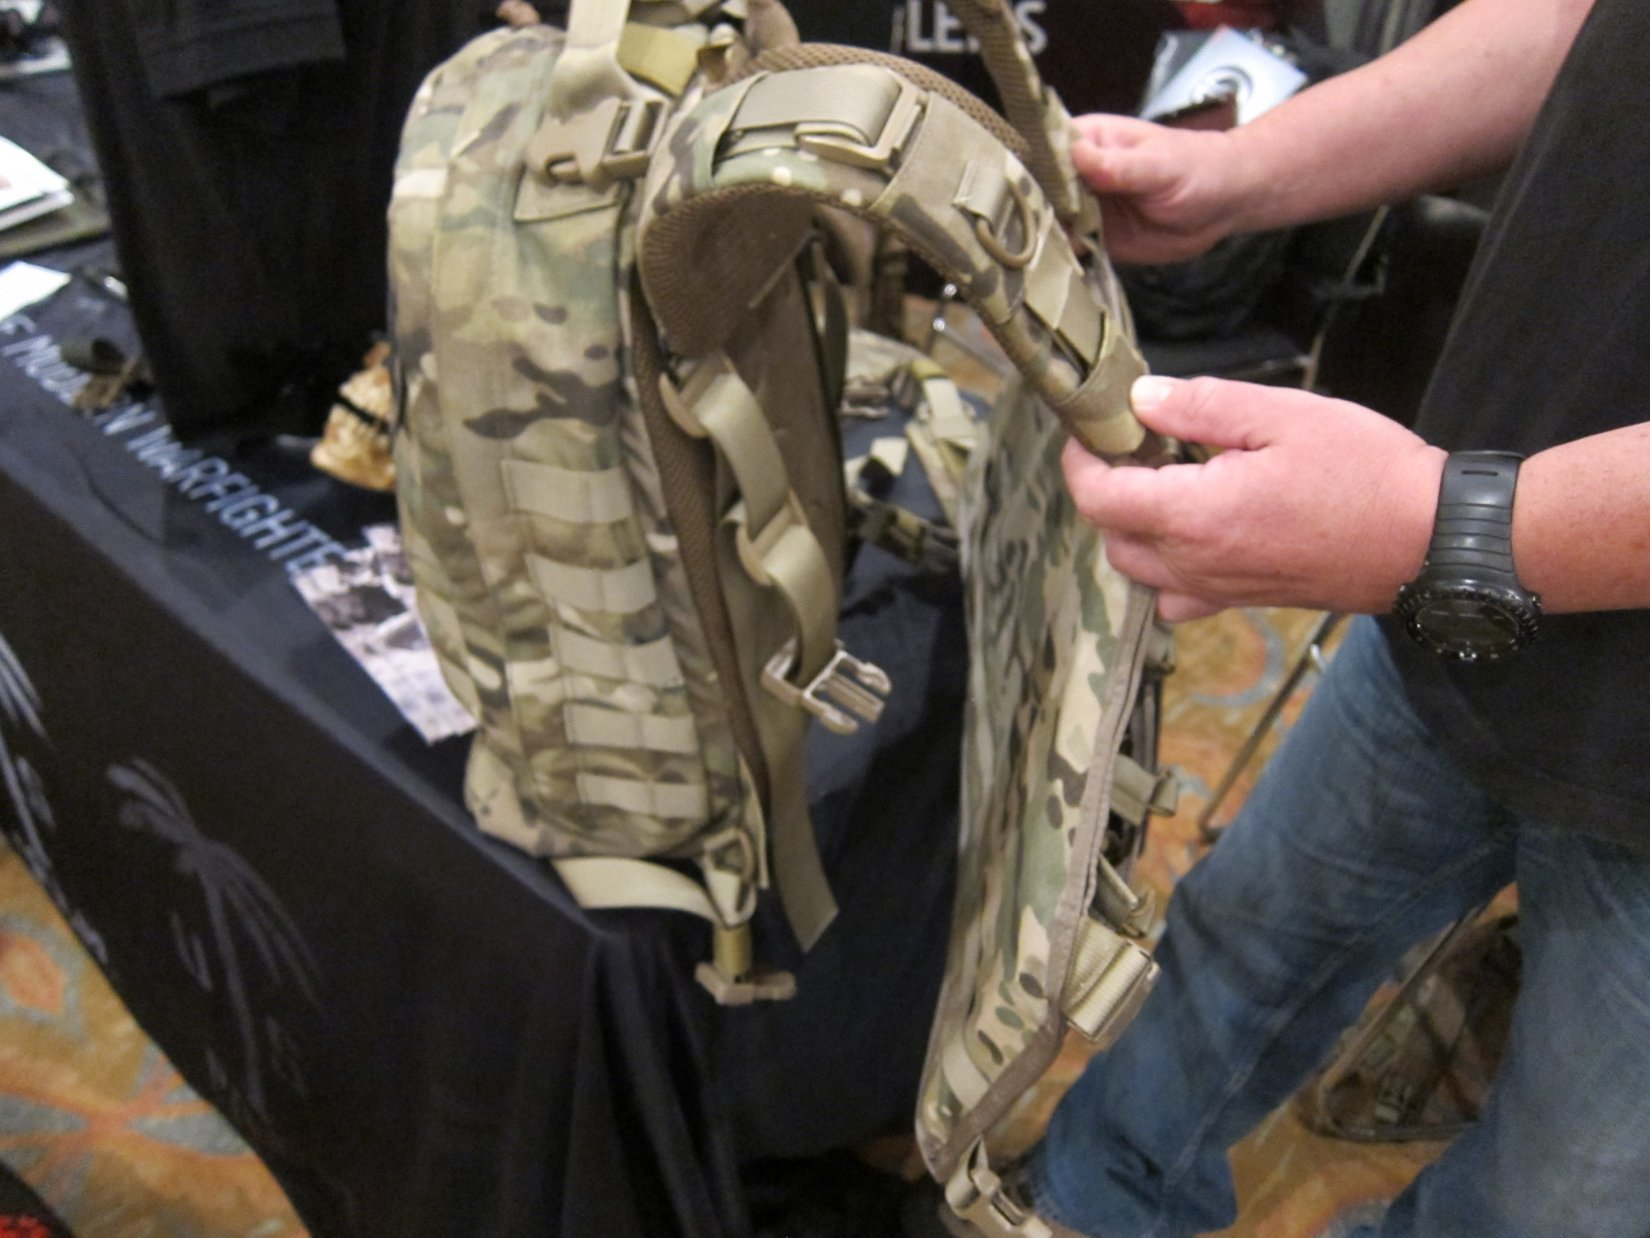 US Palm Draco Hardened Backpack HBP Tactical Pack Multi Platform Attack Rack MPAR Tactical Armor Plate Carrier Body Armor with Horse Collar System HALO Counterterrorism Summit 2012 DefenseReview.com DR 1 US Palm Draco Hardened Backpack (HBP Tactical Pack)/Multi Platform Attack Rack (MPAR) Tactical Armor Plate Carrier (Body Armor) System with Enhanced Harness System (EHS) Collar: Meet the Agile Combat System (ACS) (Video!)